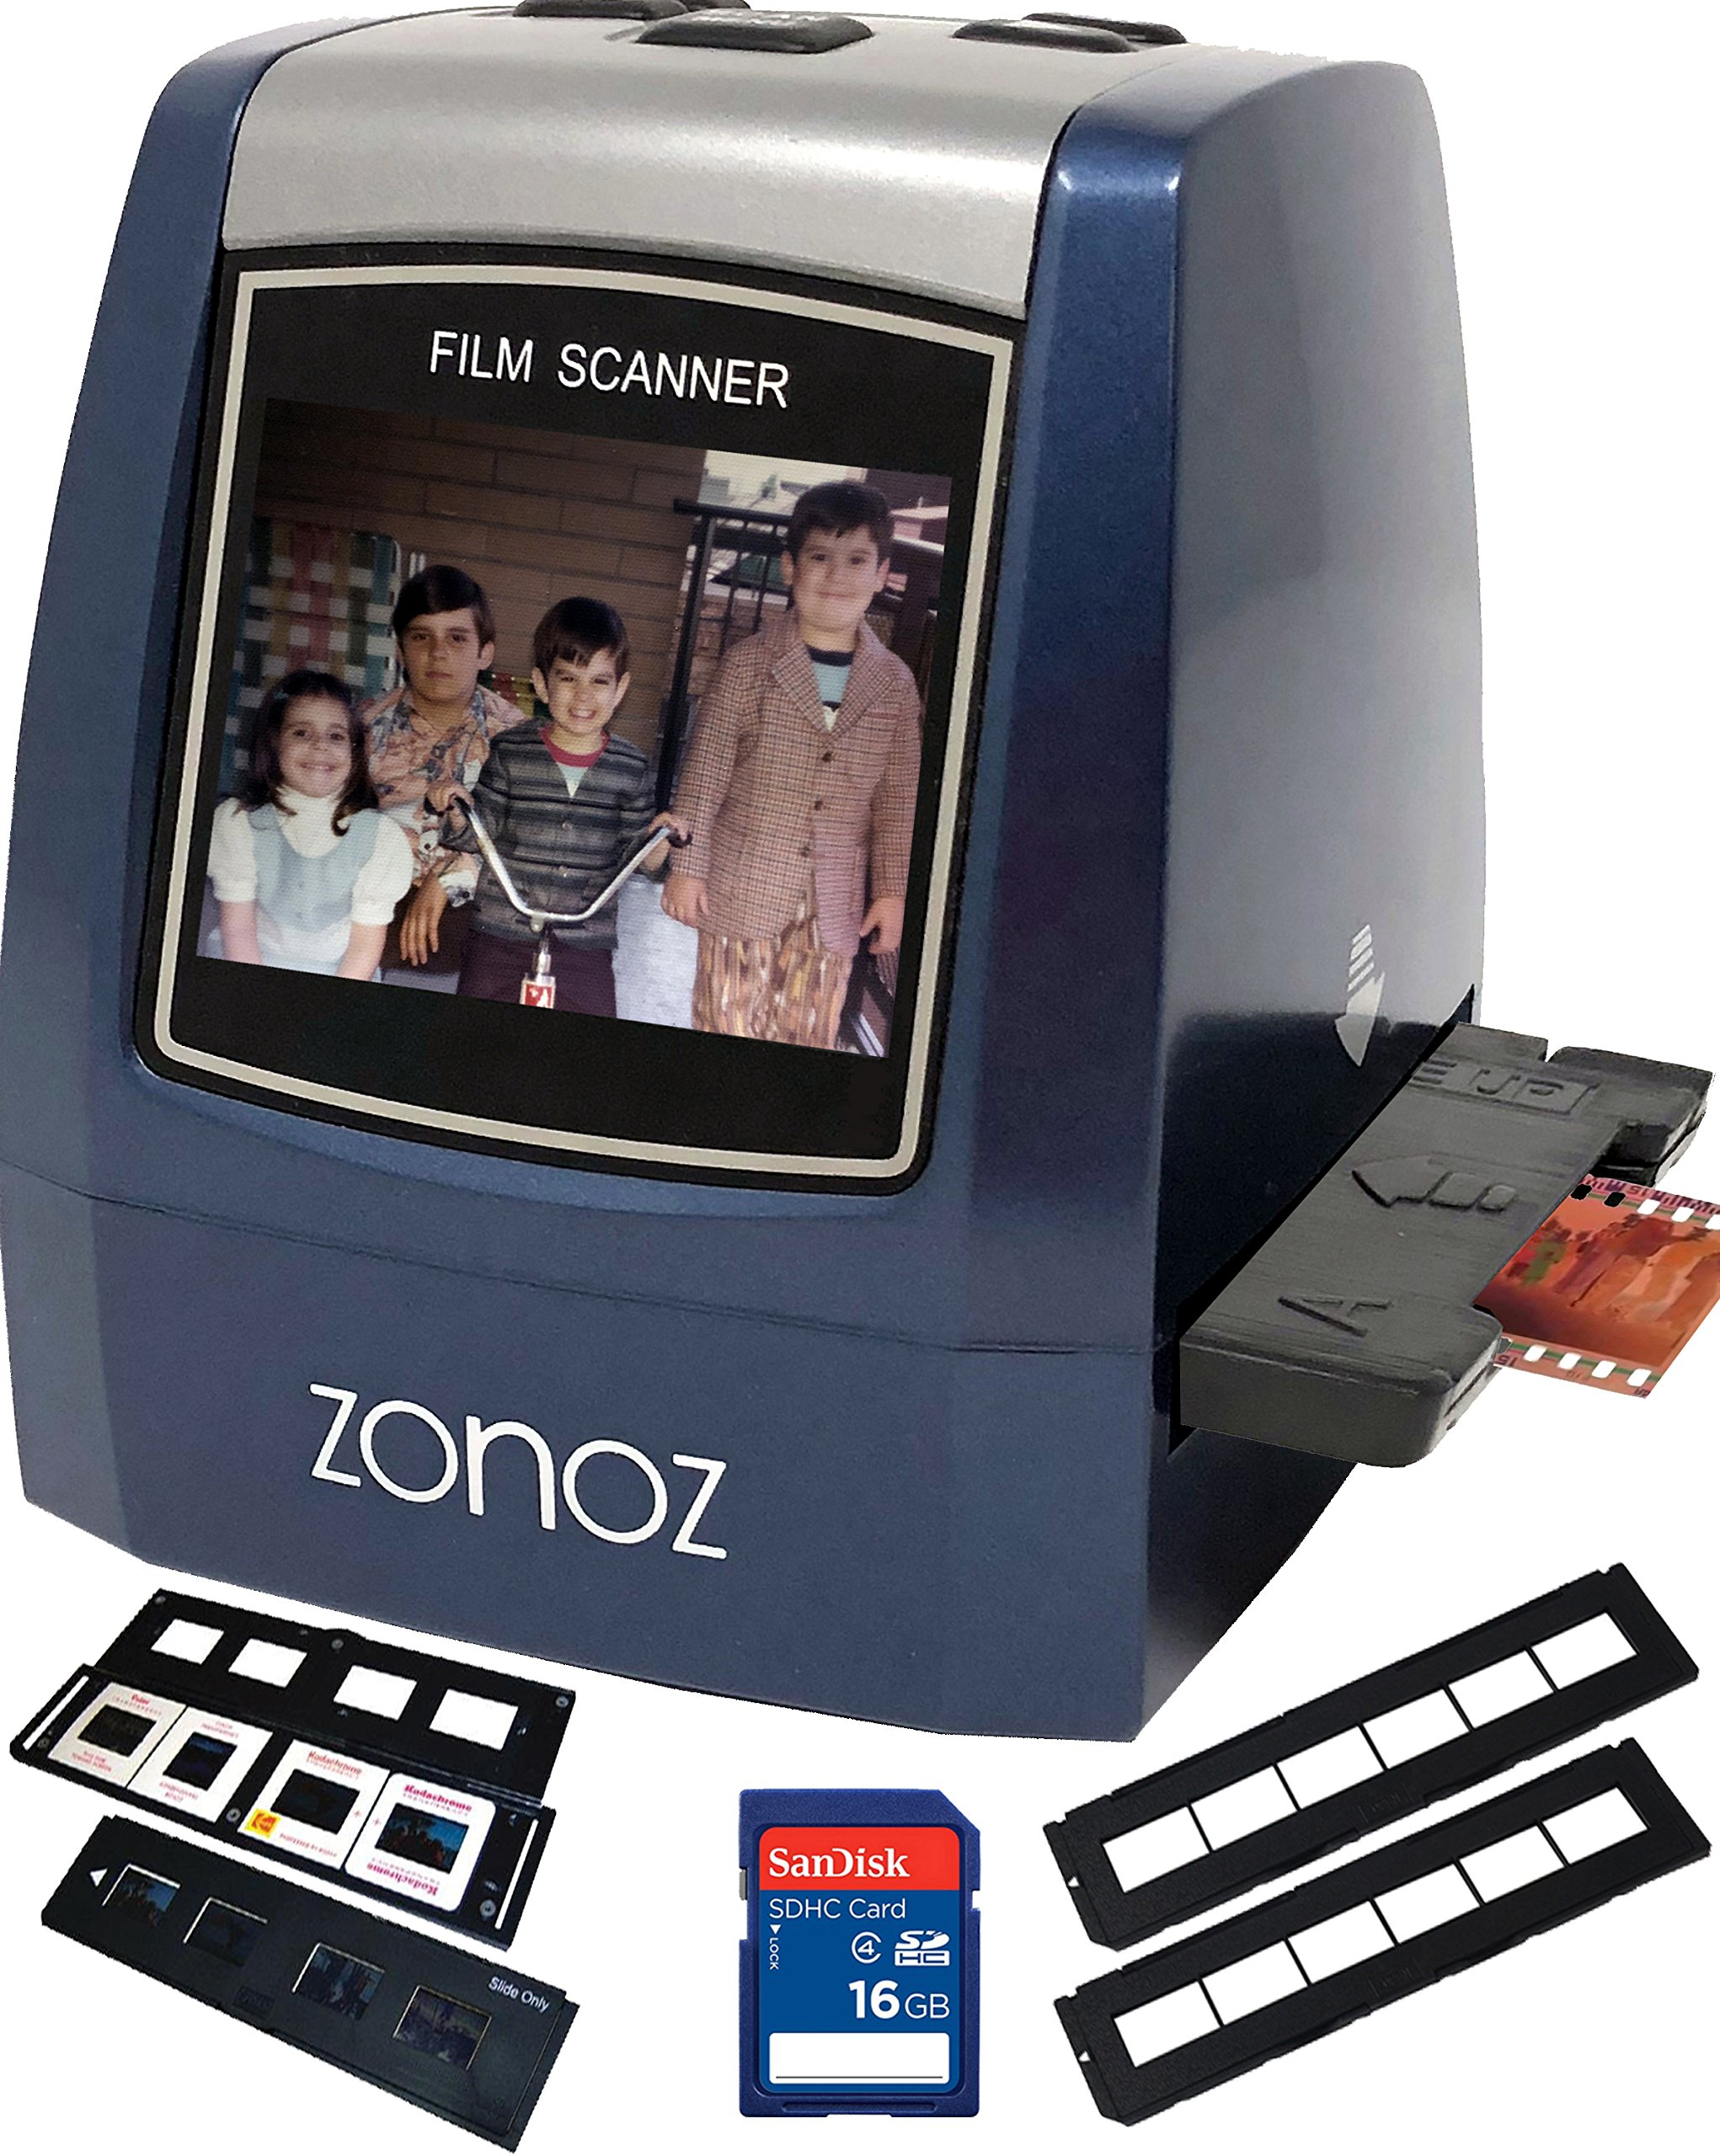 zonoz 22MP All-In-1 Film & Slide Scanner w/ Speed-Load Adapters for 35mm Negative & Slides, 126, 110, Super 8 Films, Worldwide 110/24AC Adapter 16GB SD Card & Extra Trays (FS-THREE BUNDLE) by zonoz